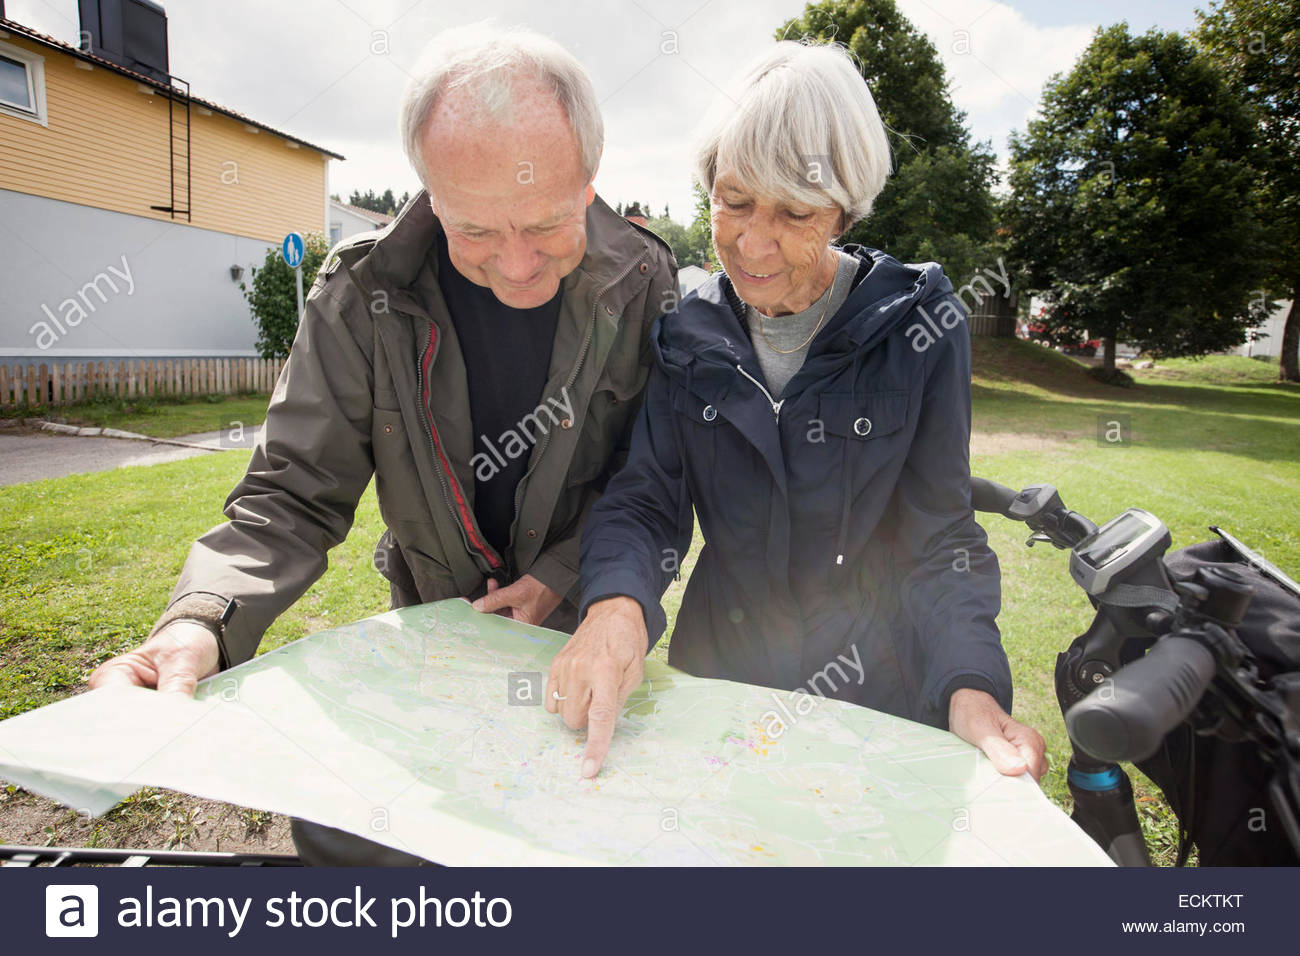 Senior couple reading map by bicycle at yard - Stock Image